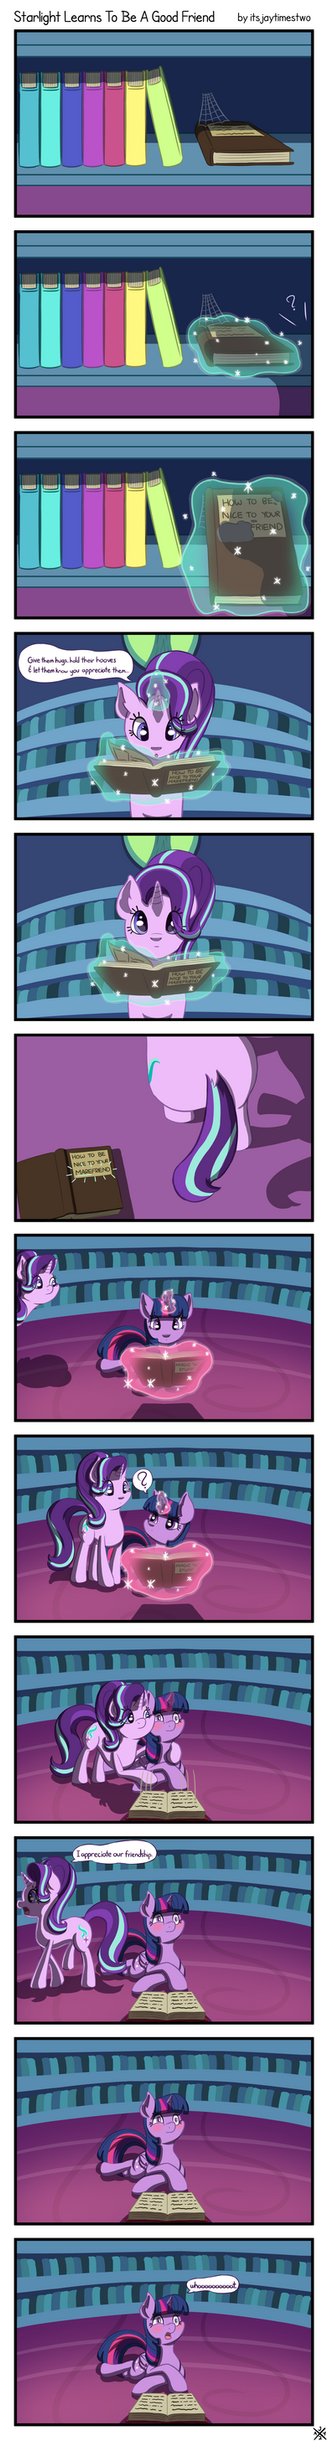 Starlight Learns to Be A Good Friend - Full Comic by itsjaytimestwo